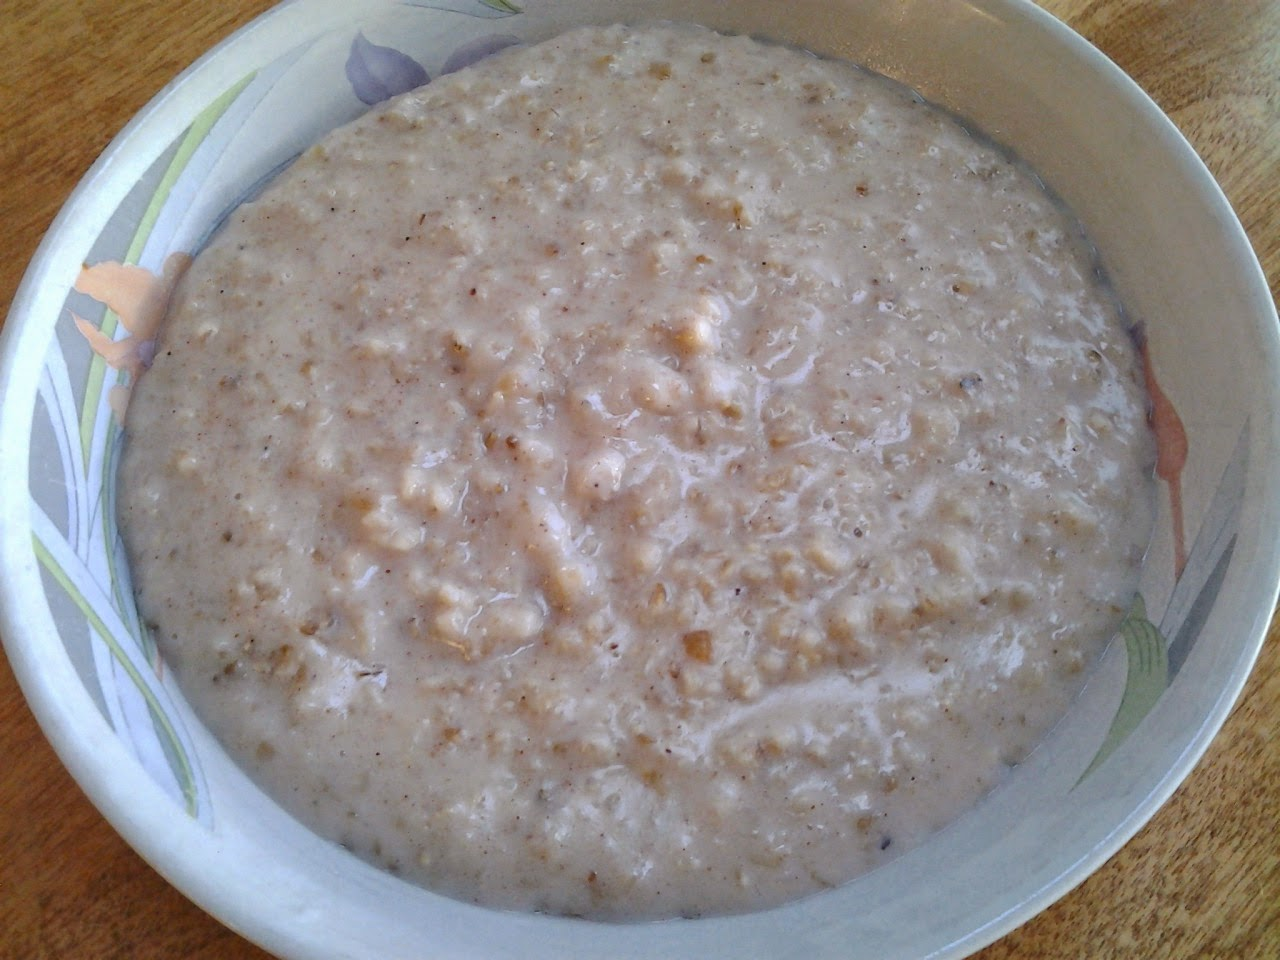 dominican oatmeal recipe